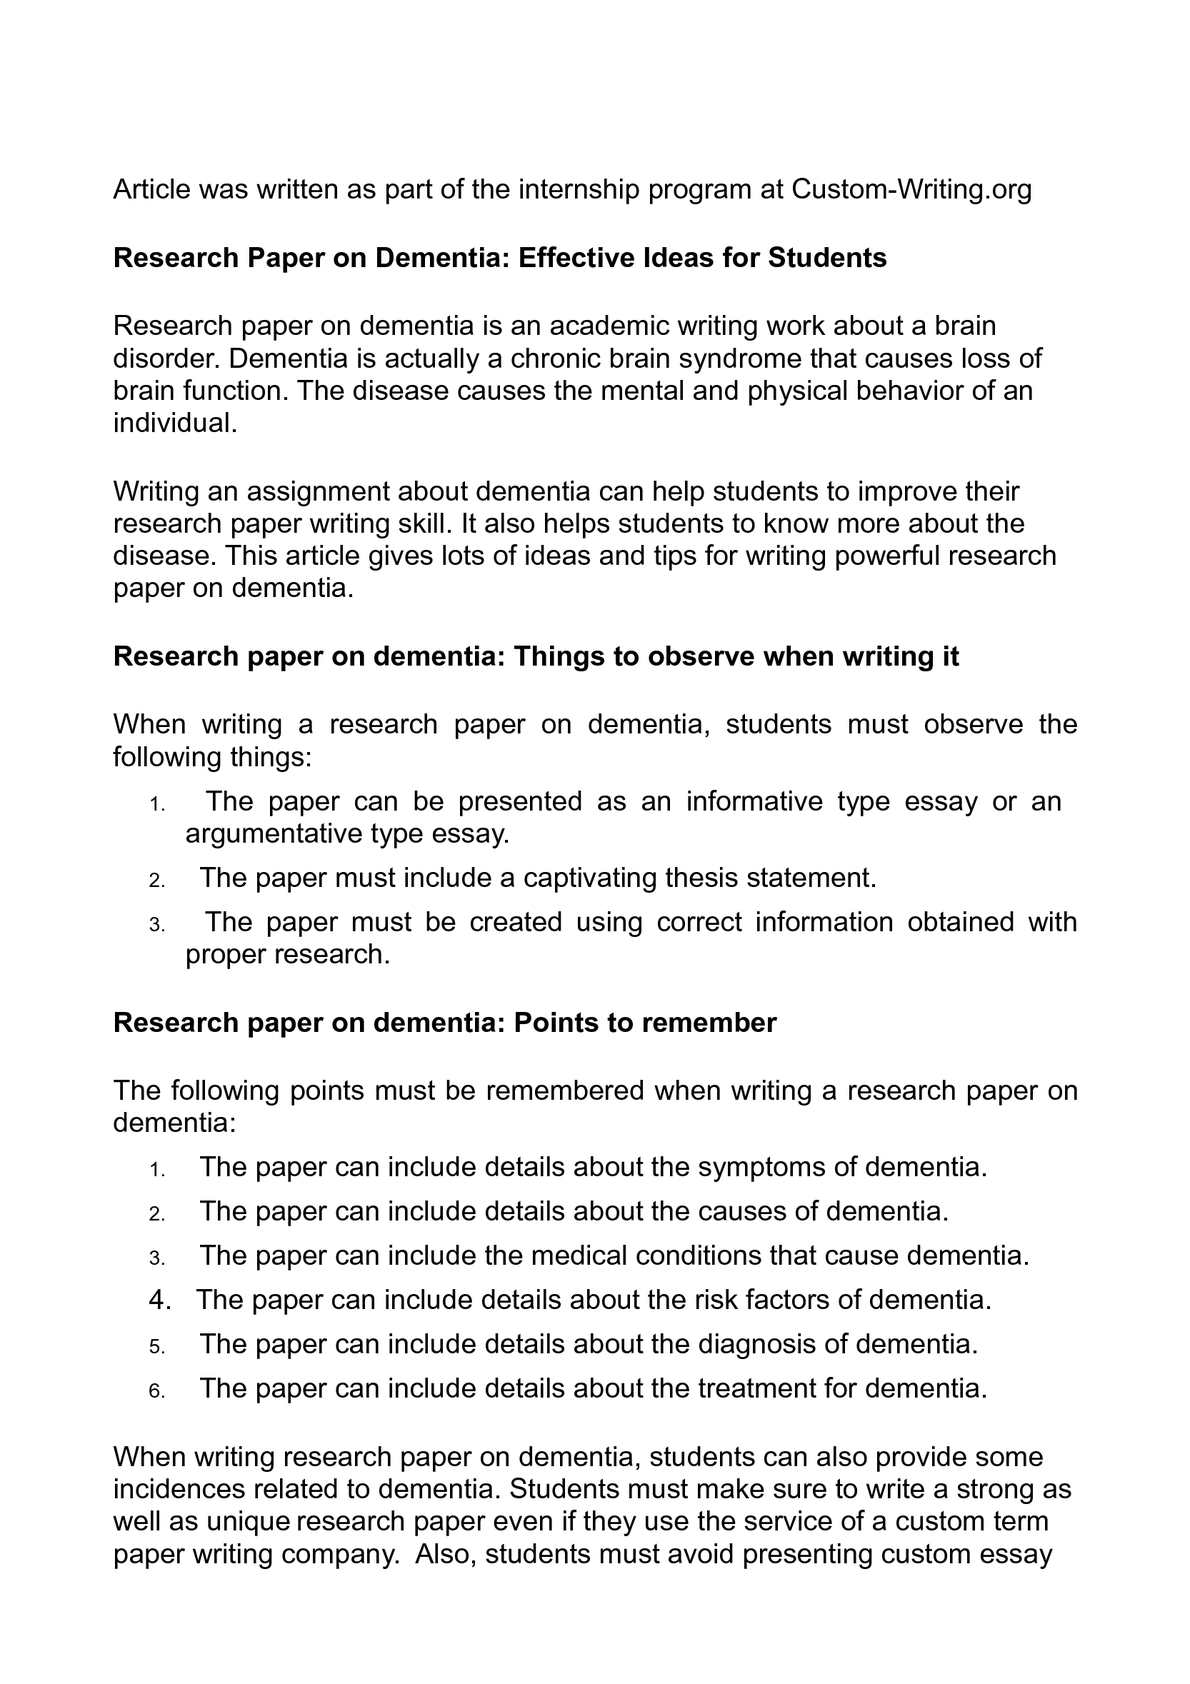 001 P1 Correct Order Of Research Wonderful A Paper Sequence Steps For Writing Full